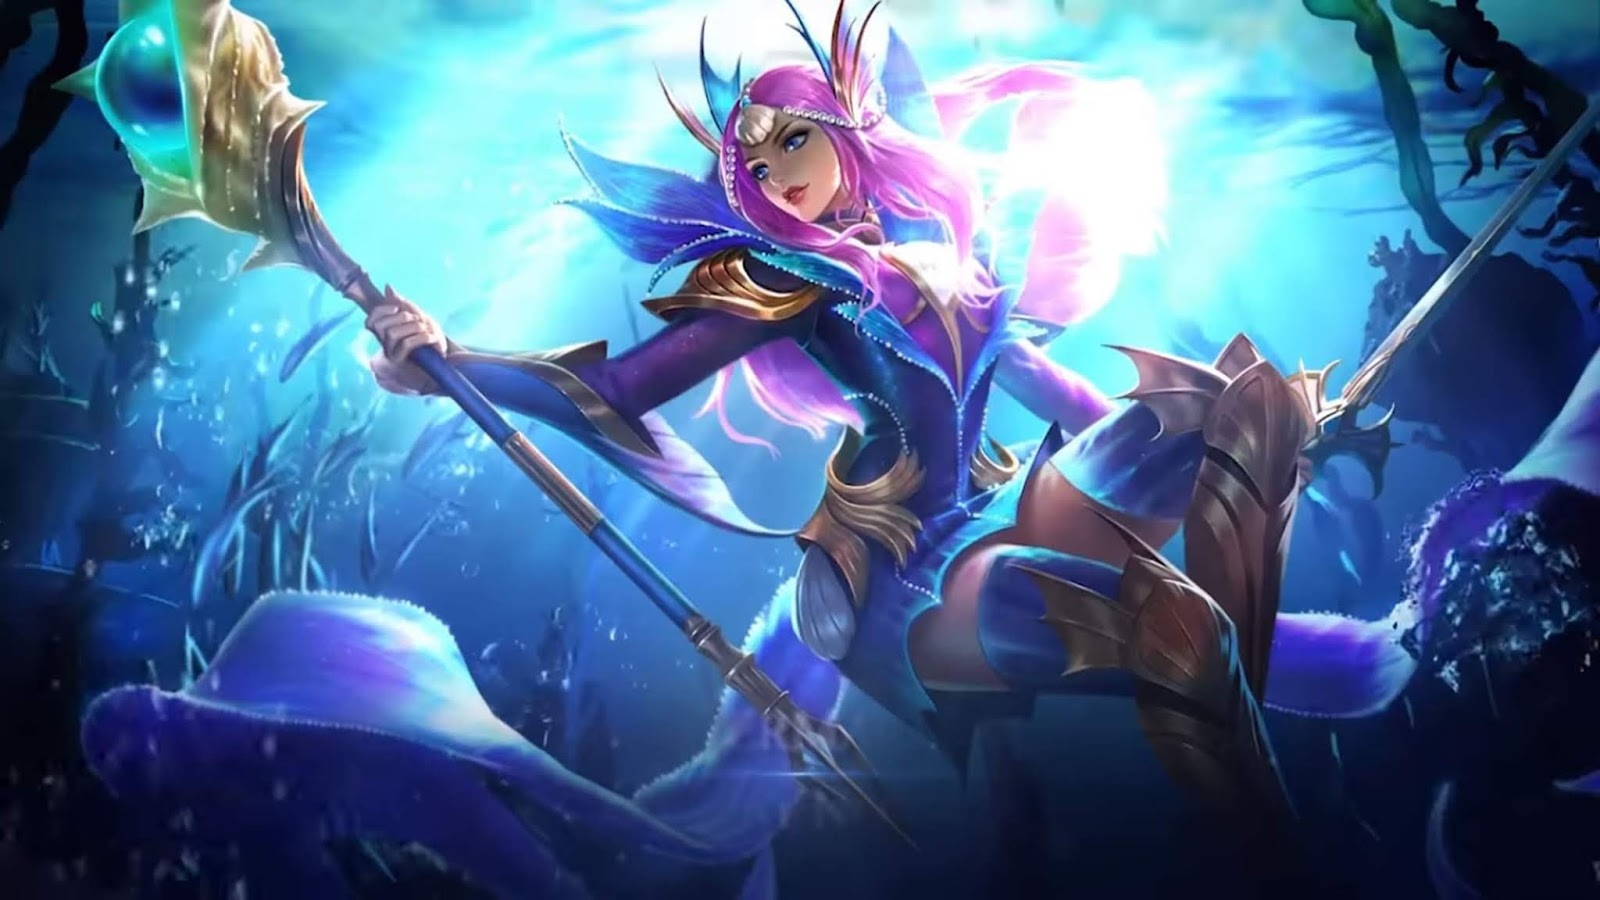 Wallpaper Odette Mermaid Princess Skin Mobile Legends HD for PC